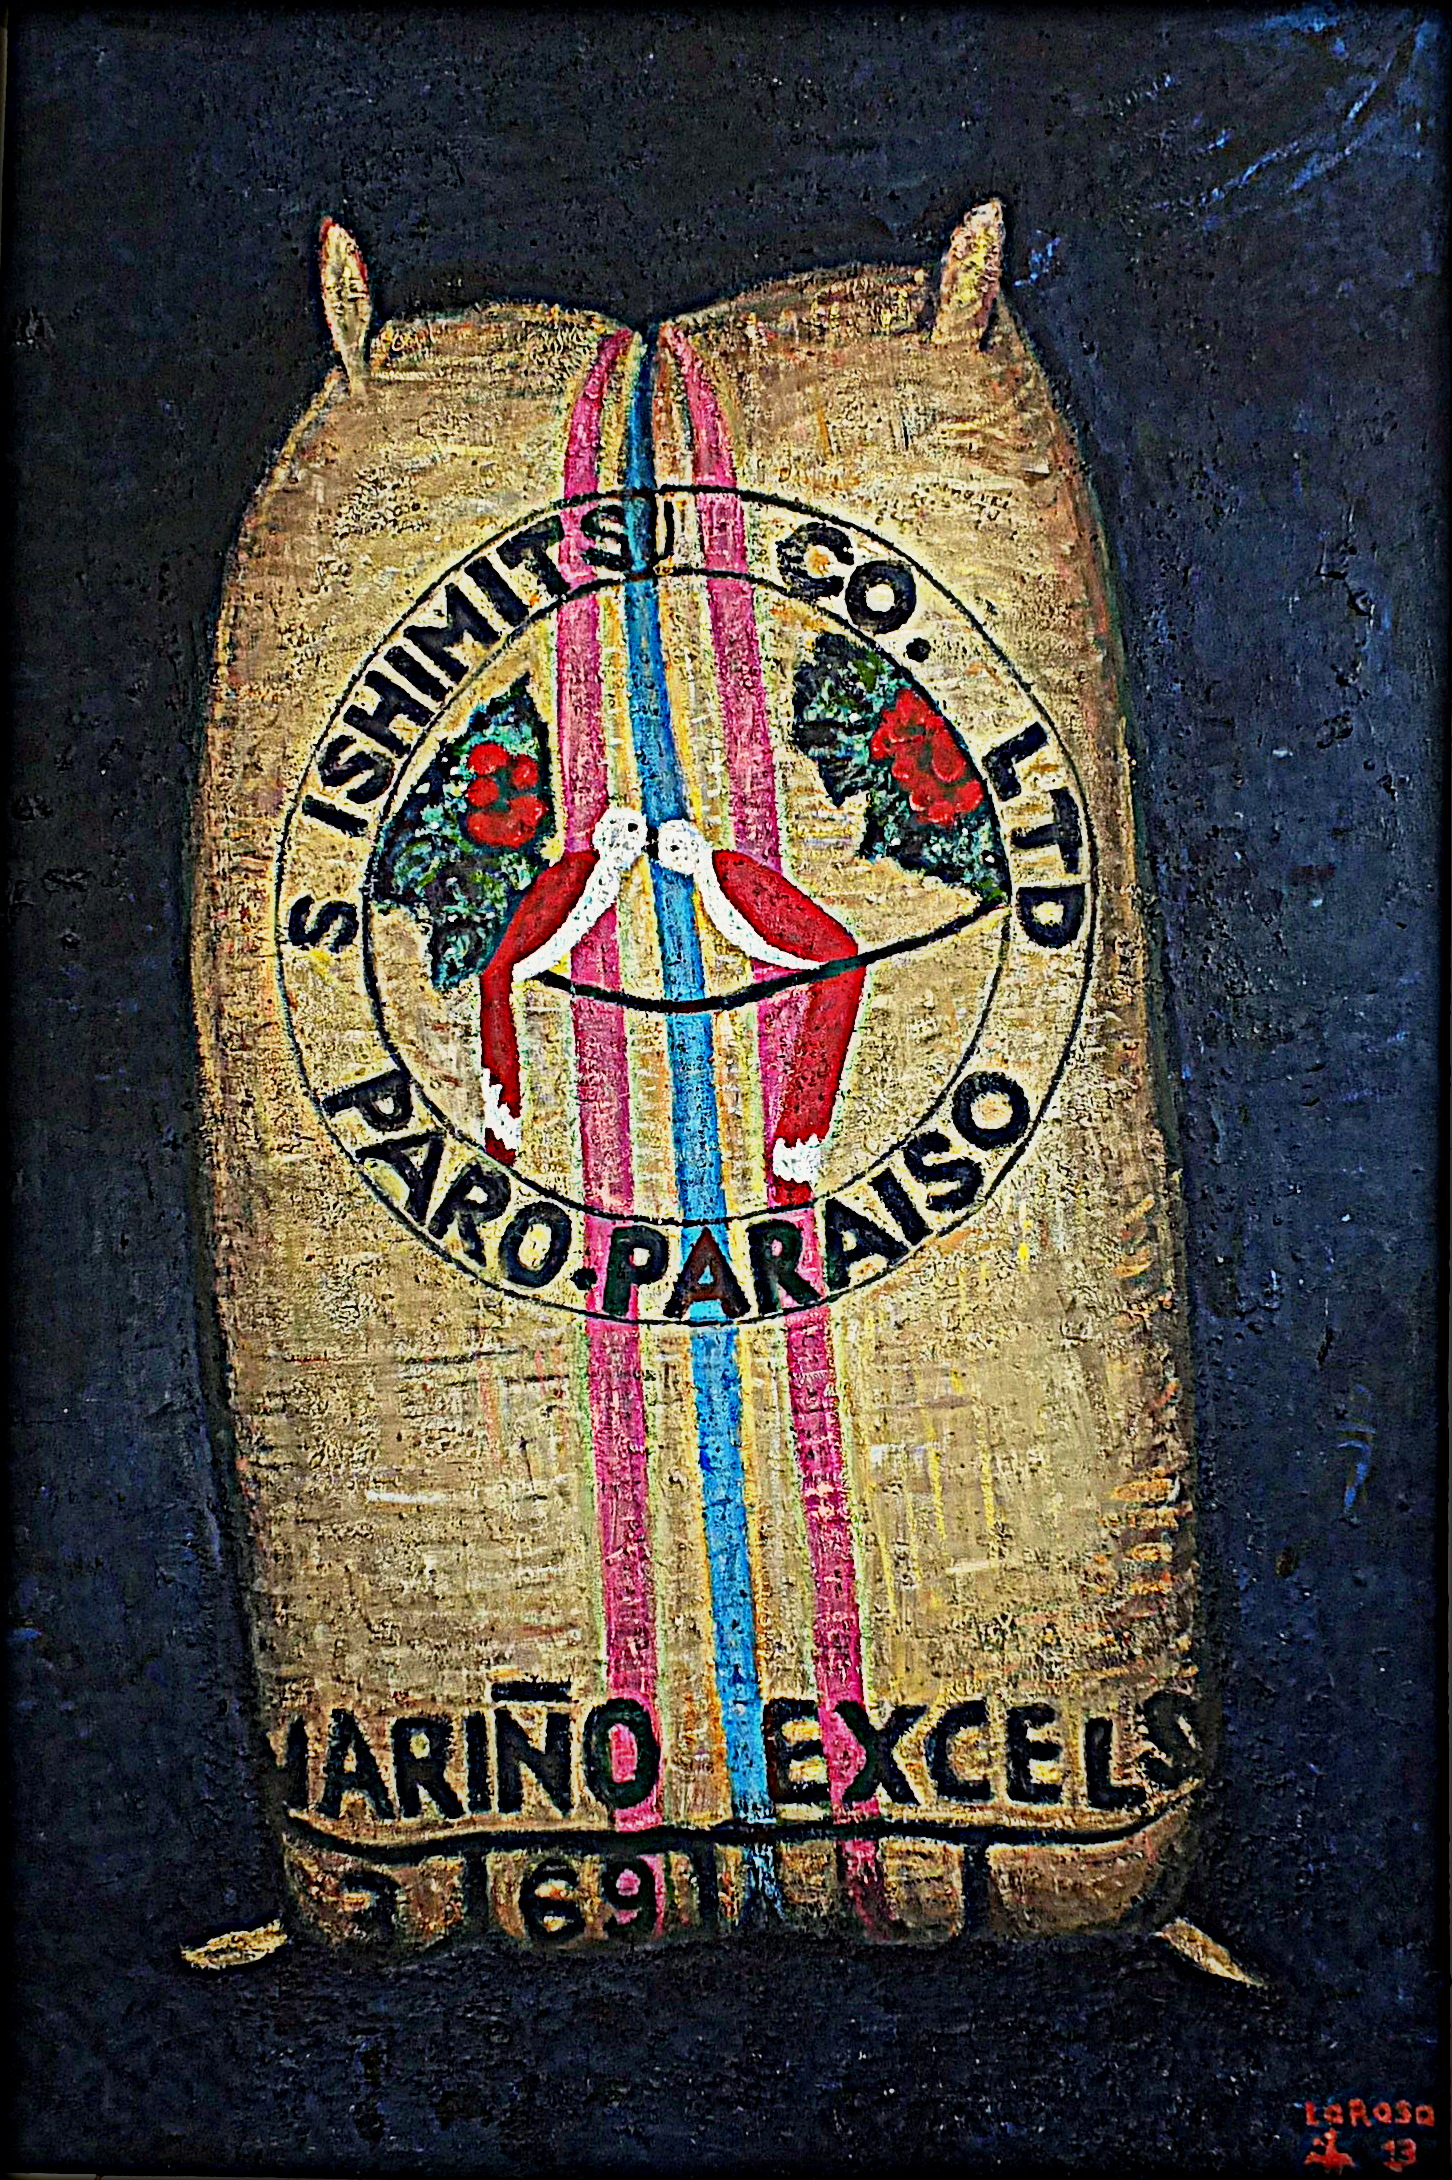 Product of Nariño I